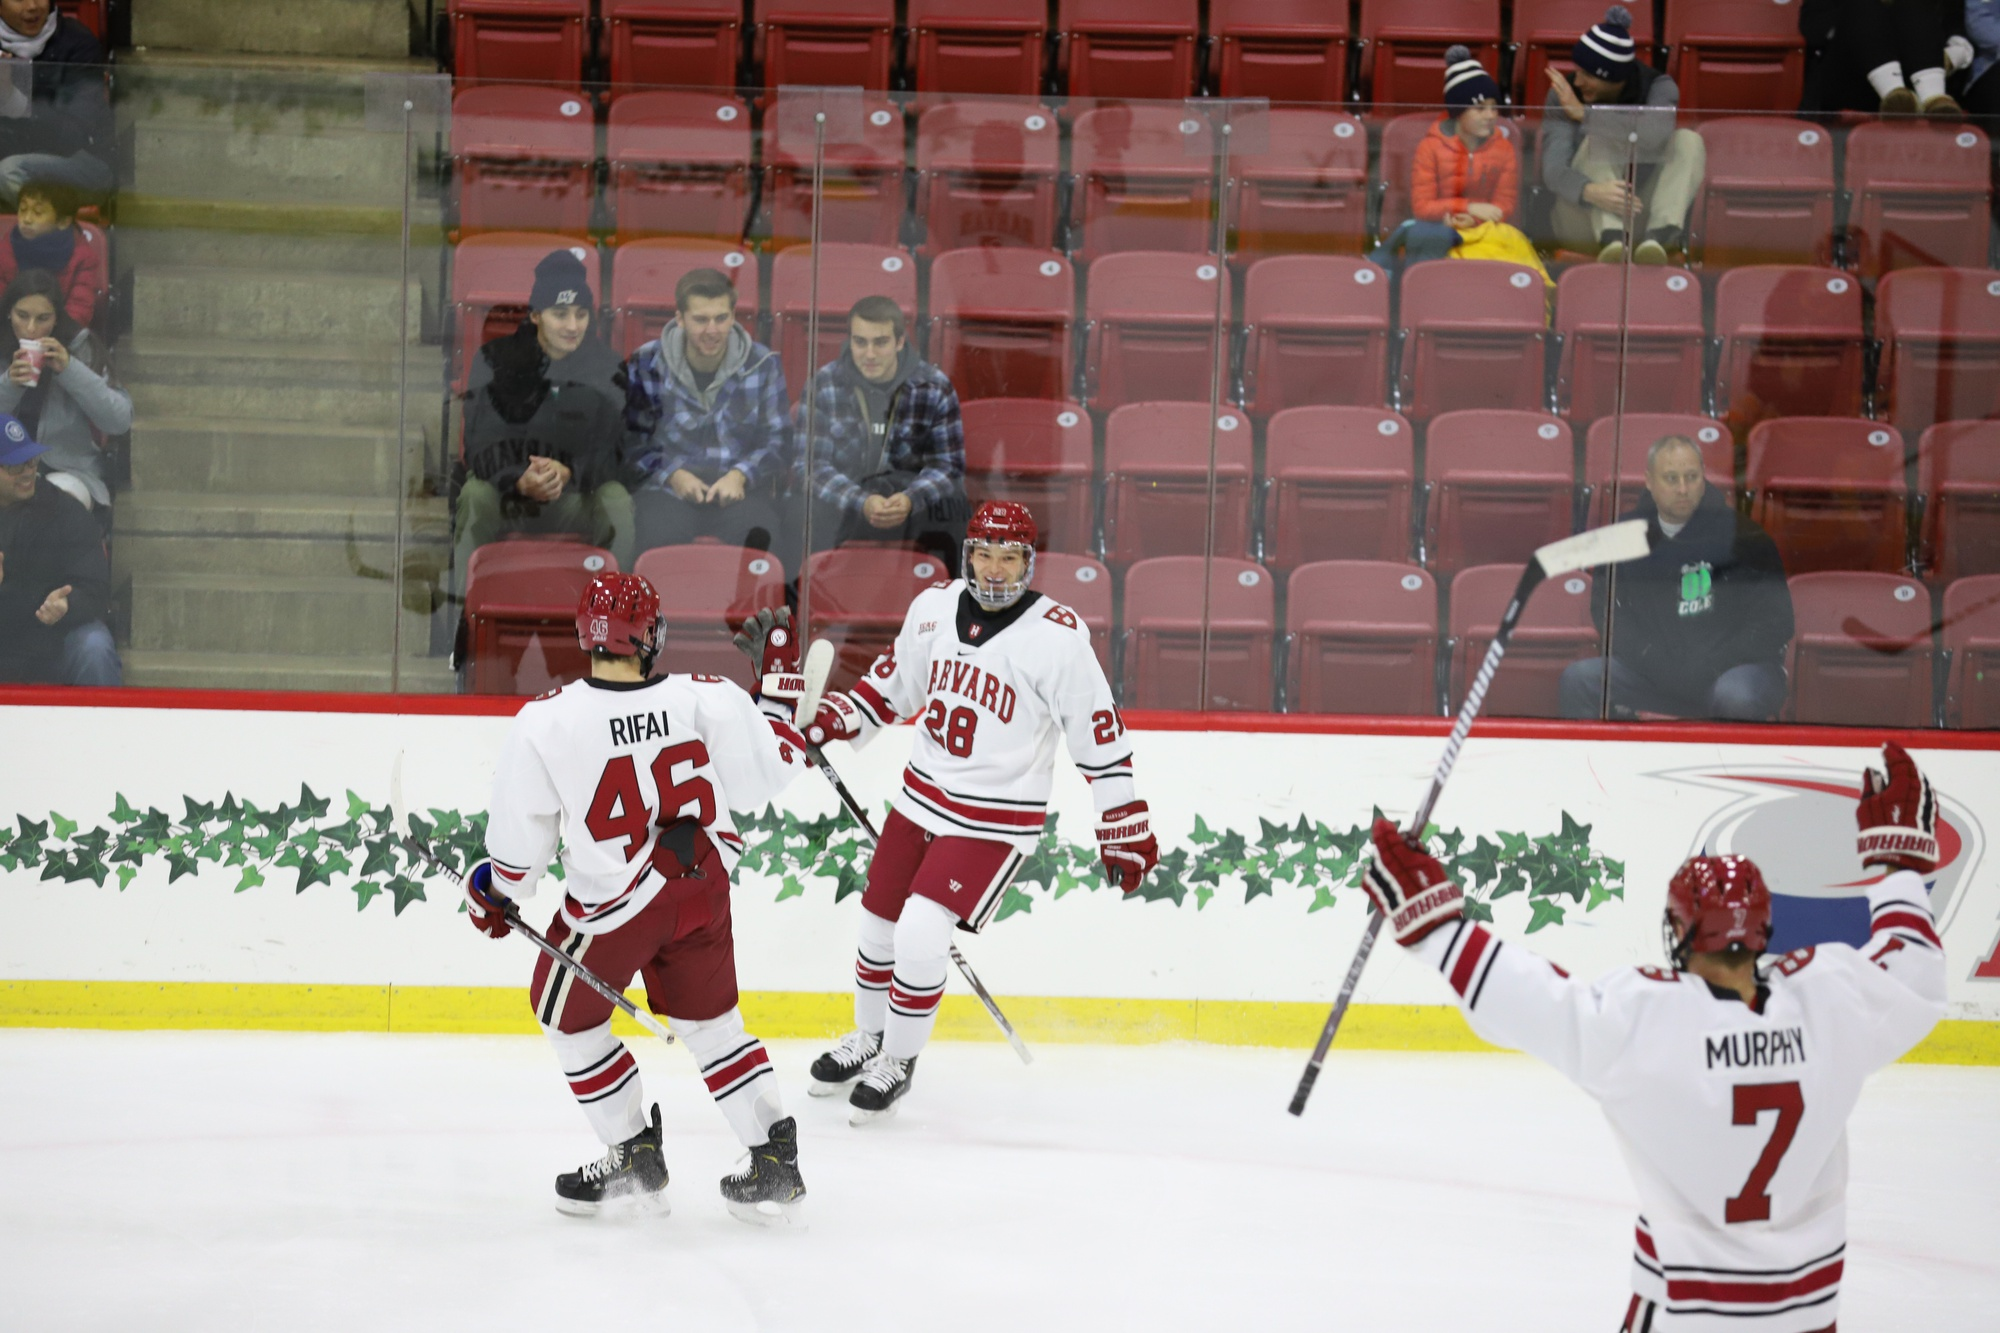 Though the Crimson has had goal-scorers up and down the lineup, regular contributors like junior Henry Bowlby, who is on a five-game point streak, bolster the team's offensive power.